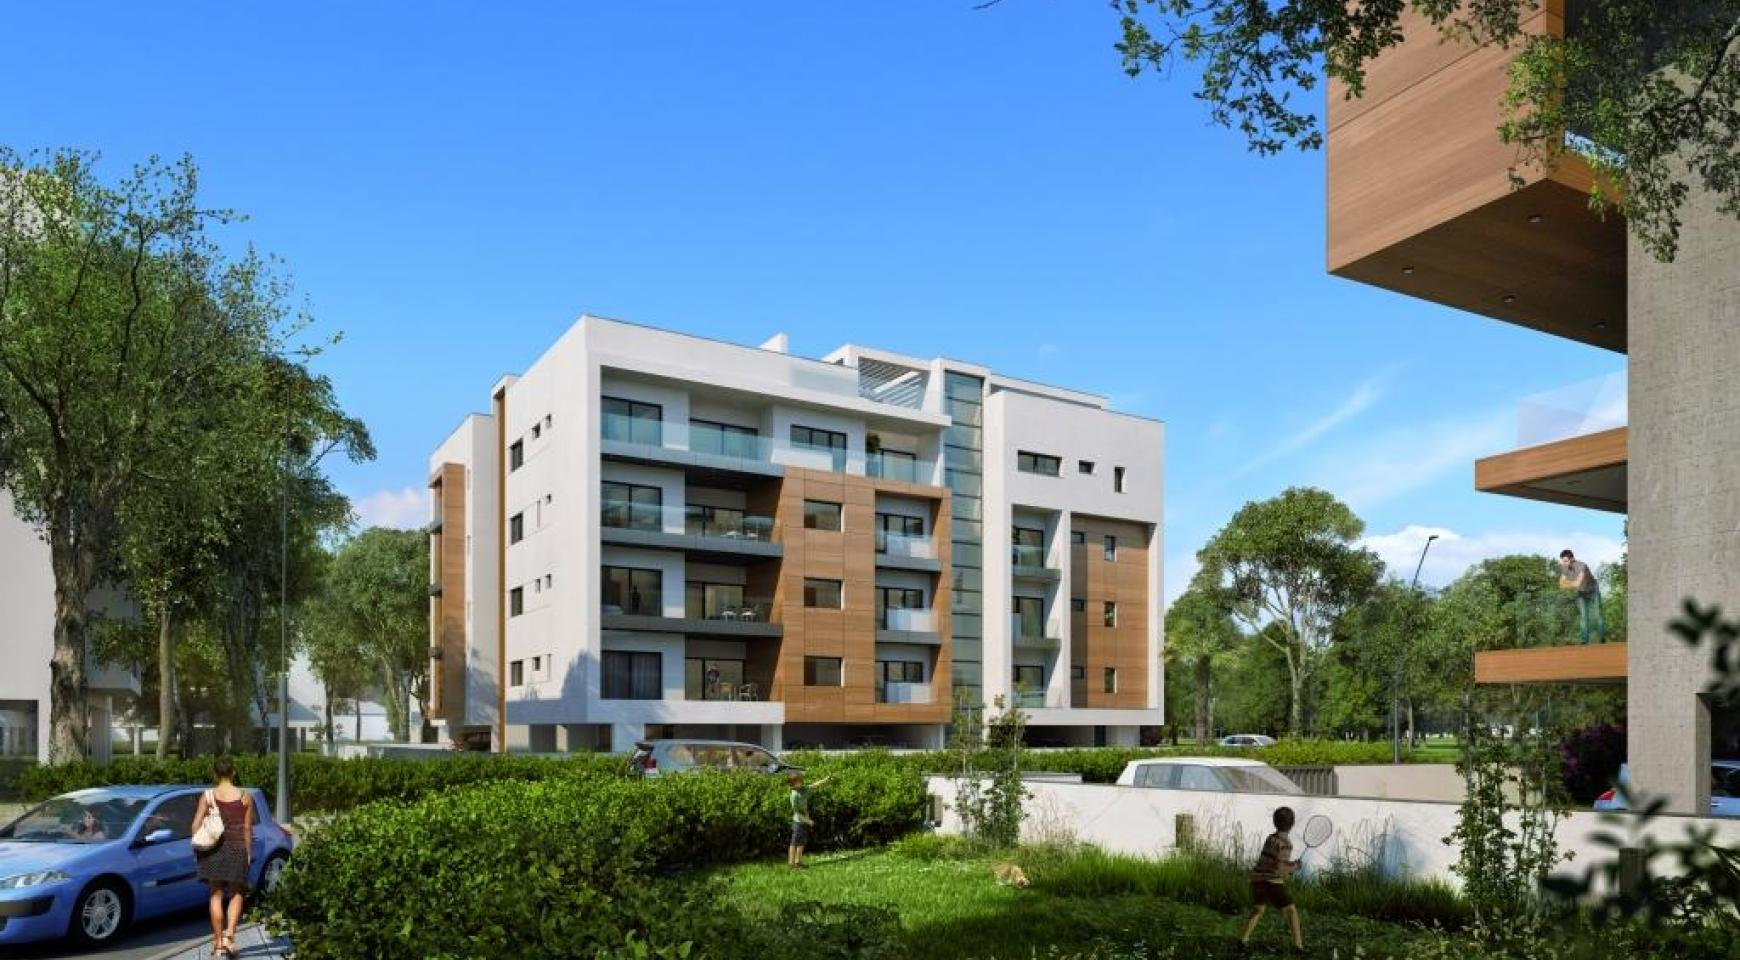 New Modern 3 Bedroom Apartment near the Sea - 4